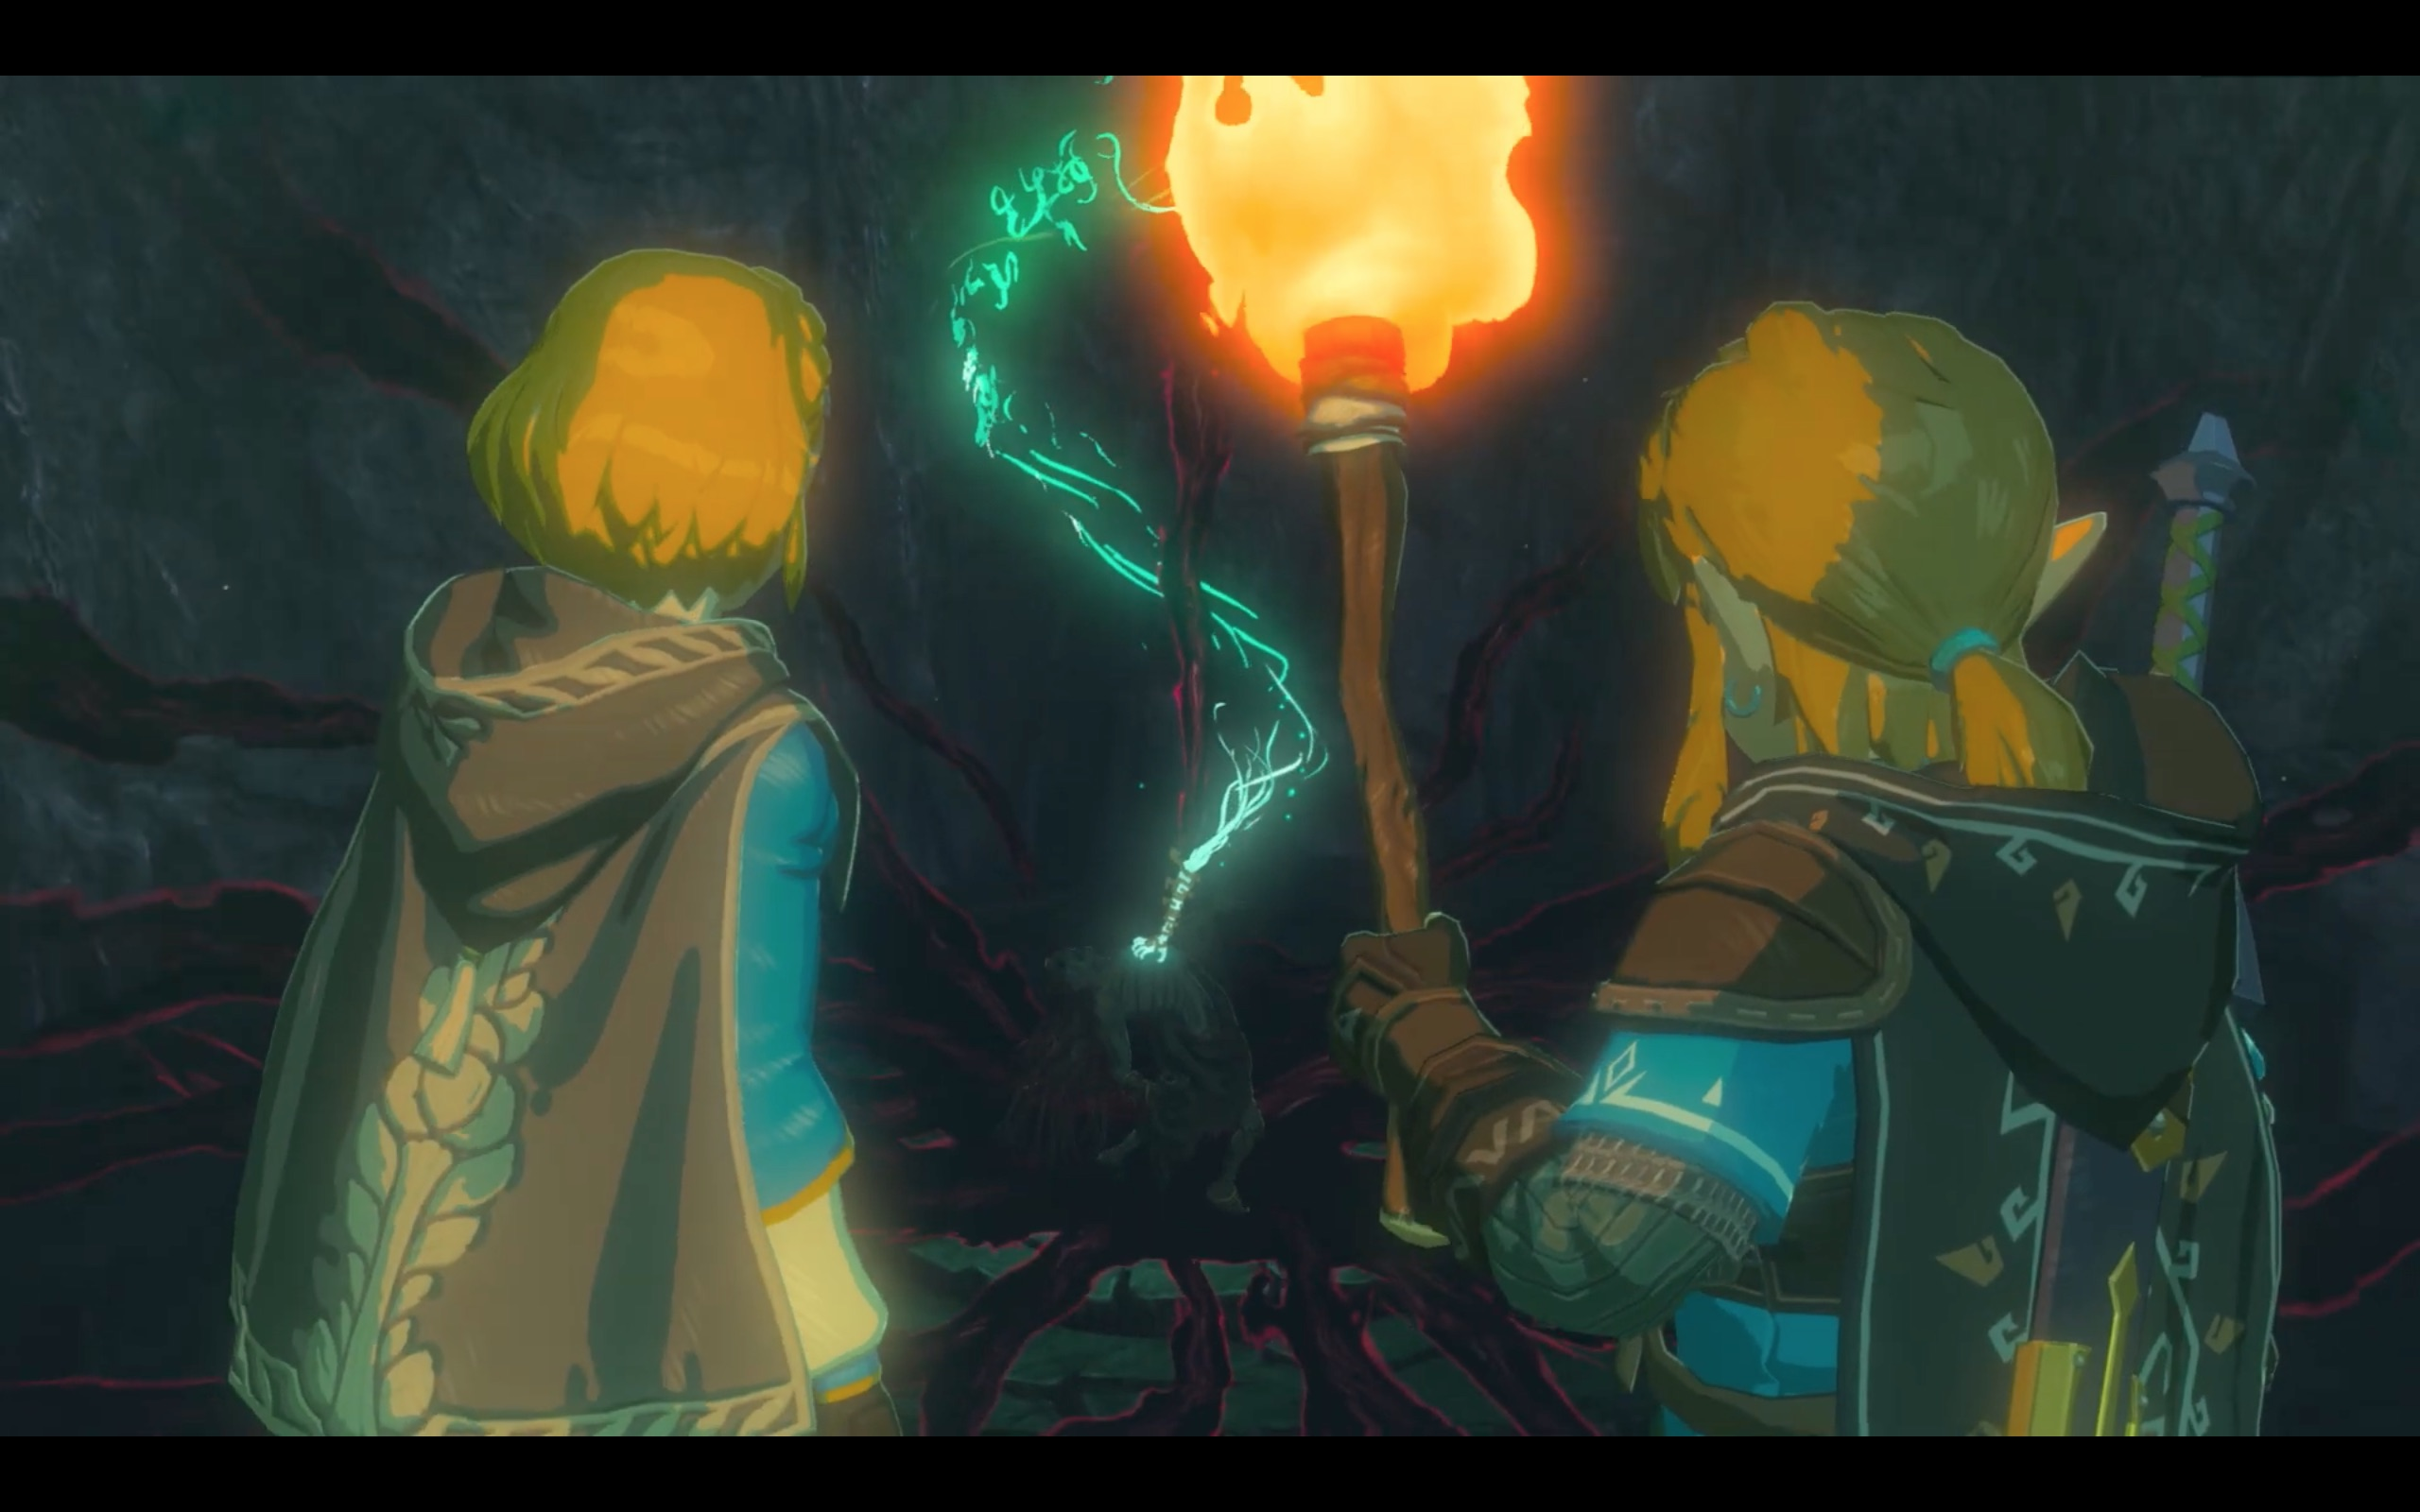 Breath of the Wild 2 Trailer Analysis